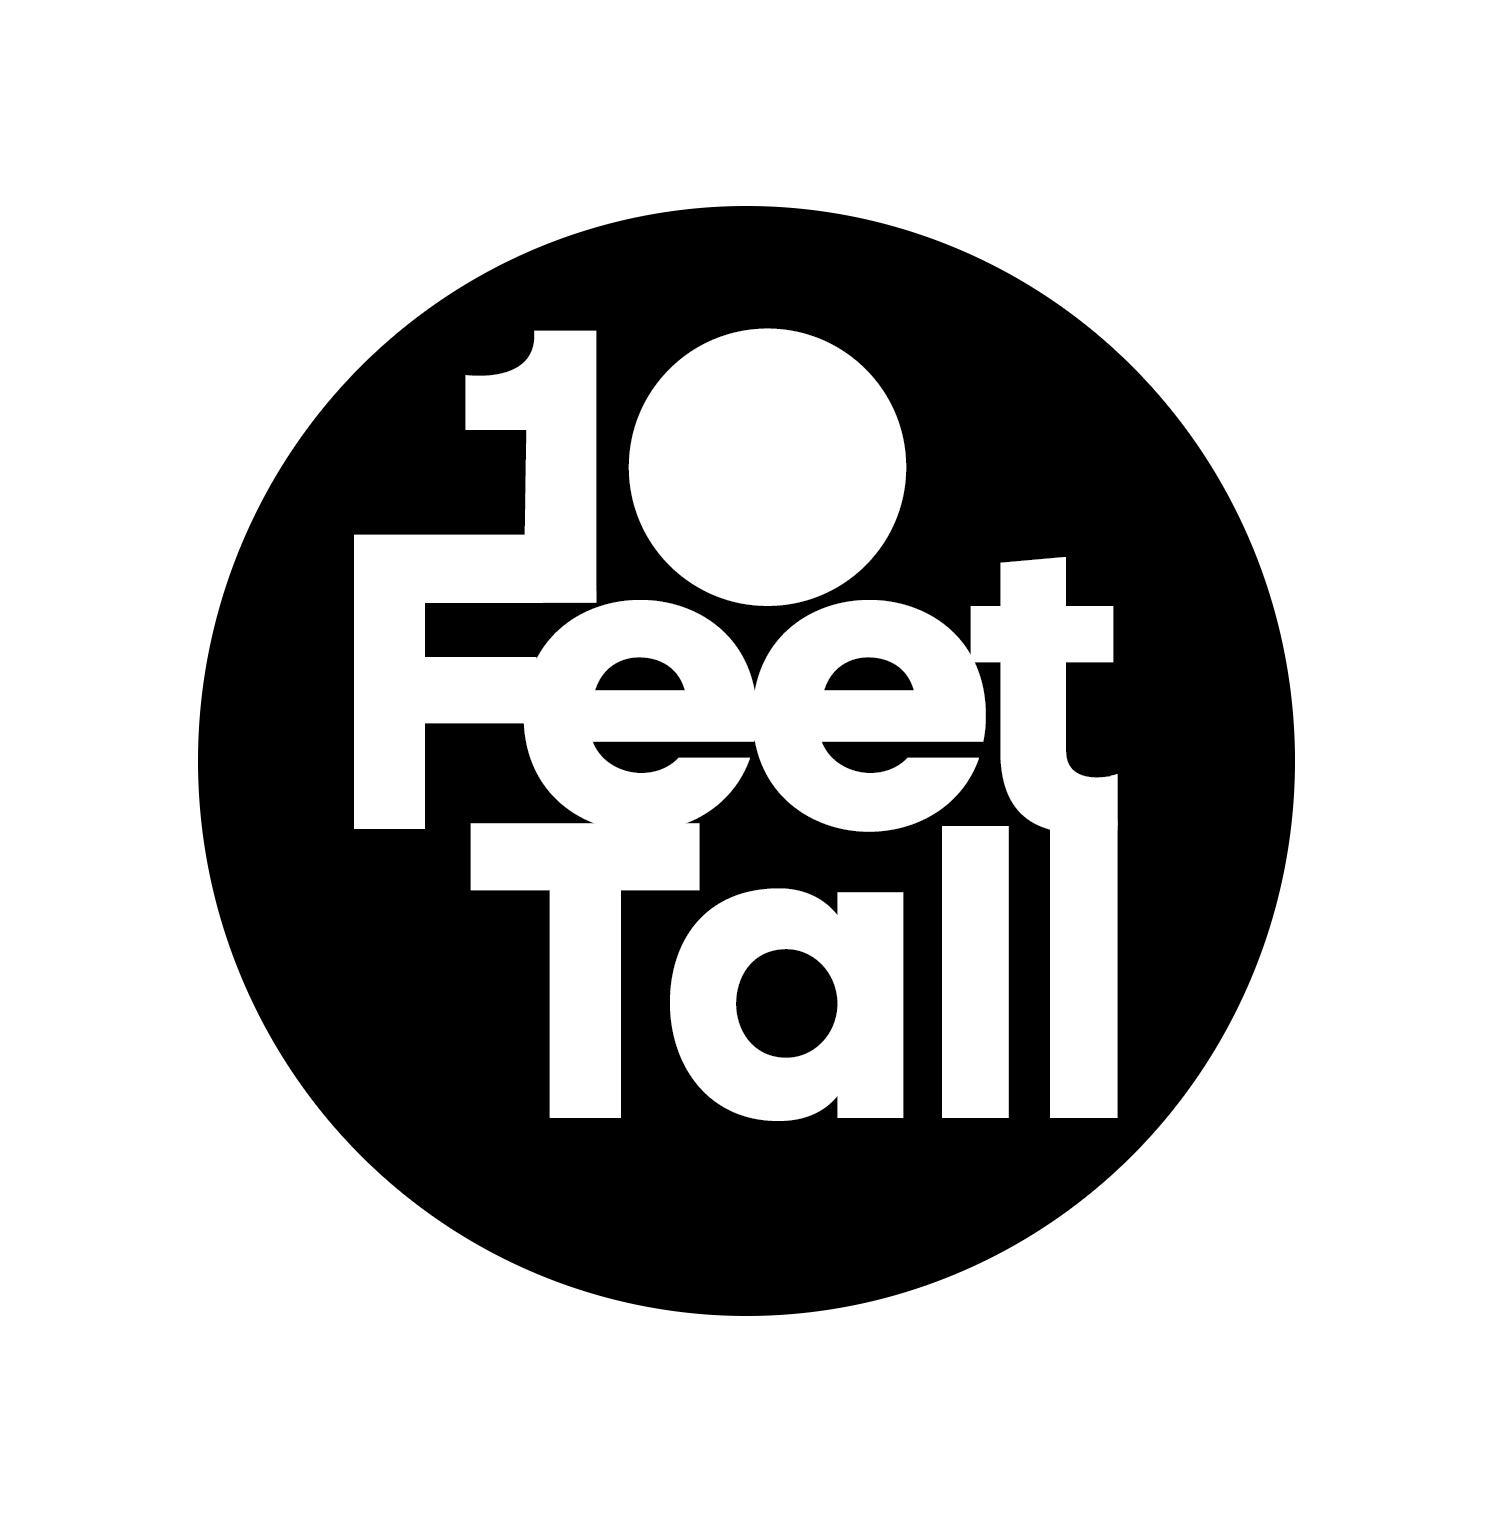 10 Feet Tall Sponsor Logo